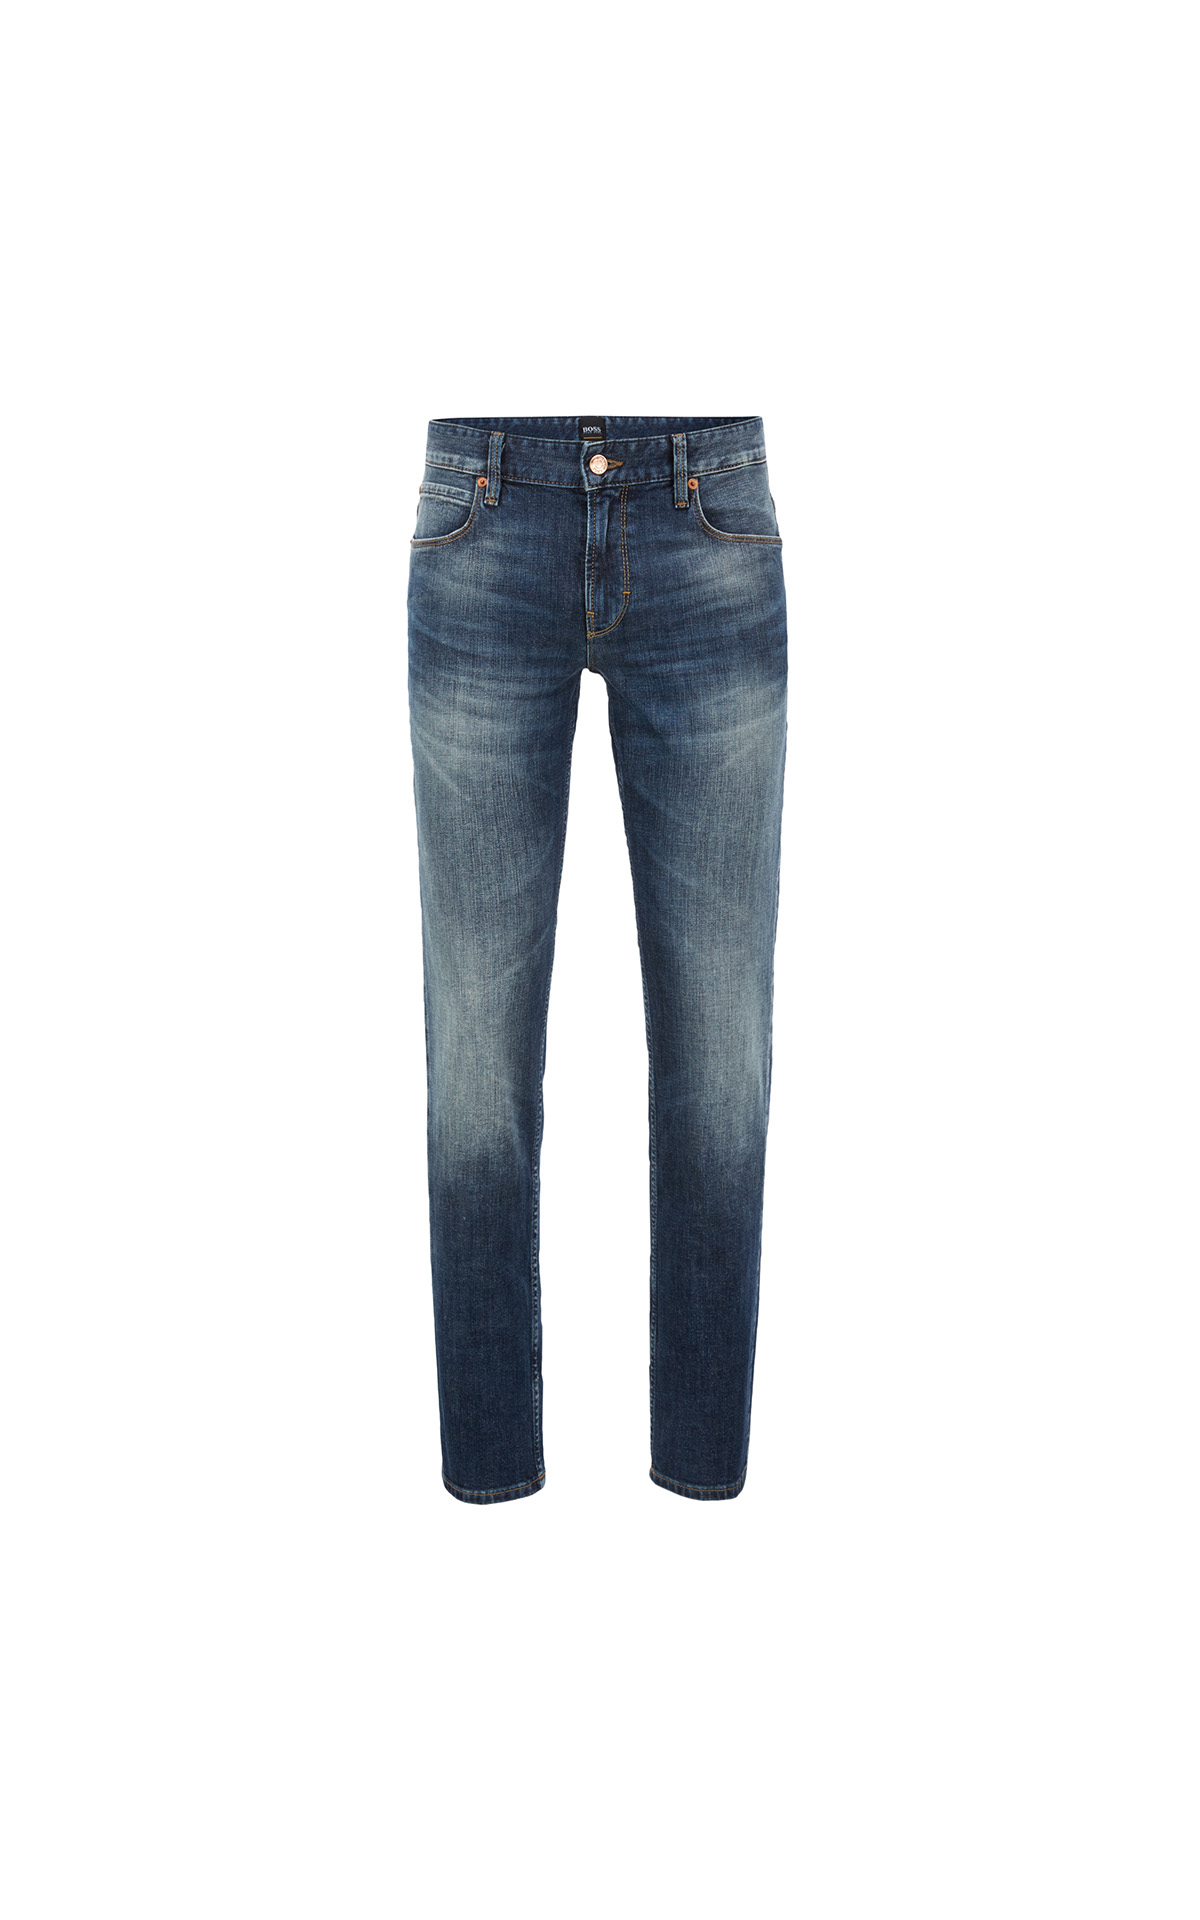 Boss Orange63 Slim-fit Jeans in Authentic Stretch Denim at The Bicester Village Shopping Collection